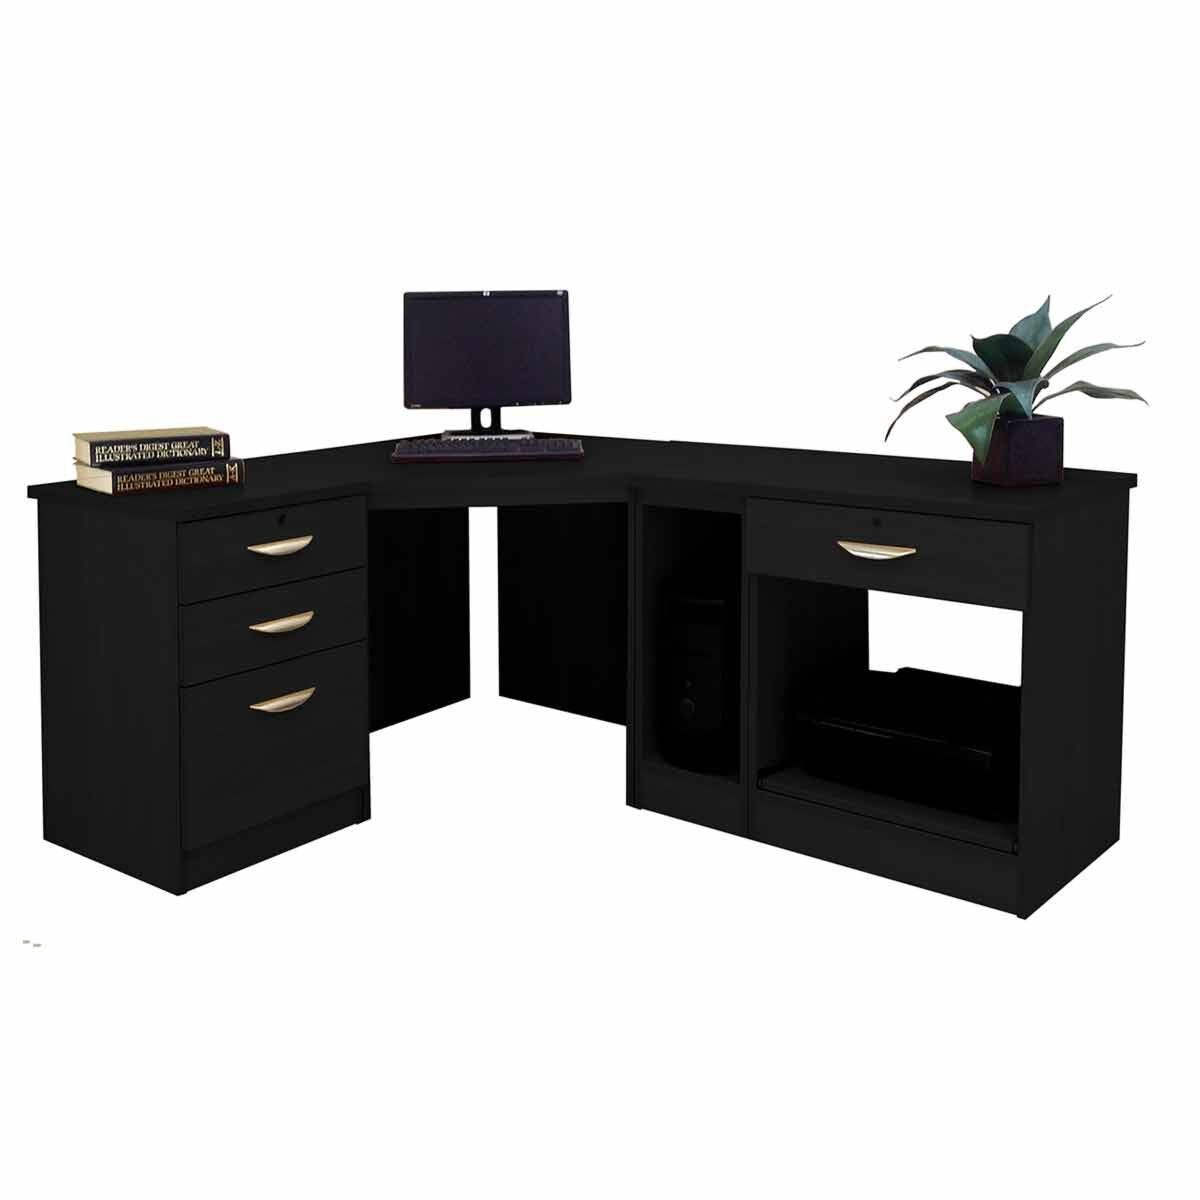 R White Home Office Wide Corner Desk Set Black Havana